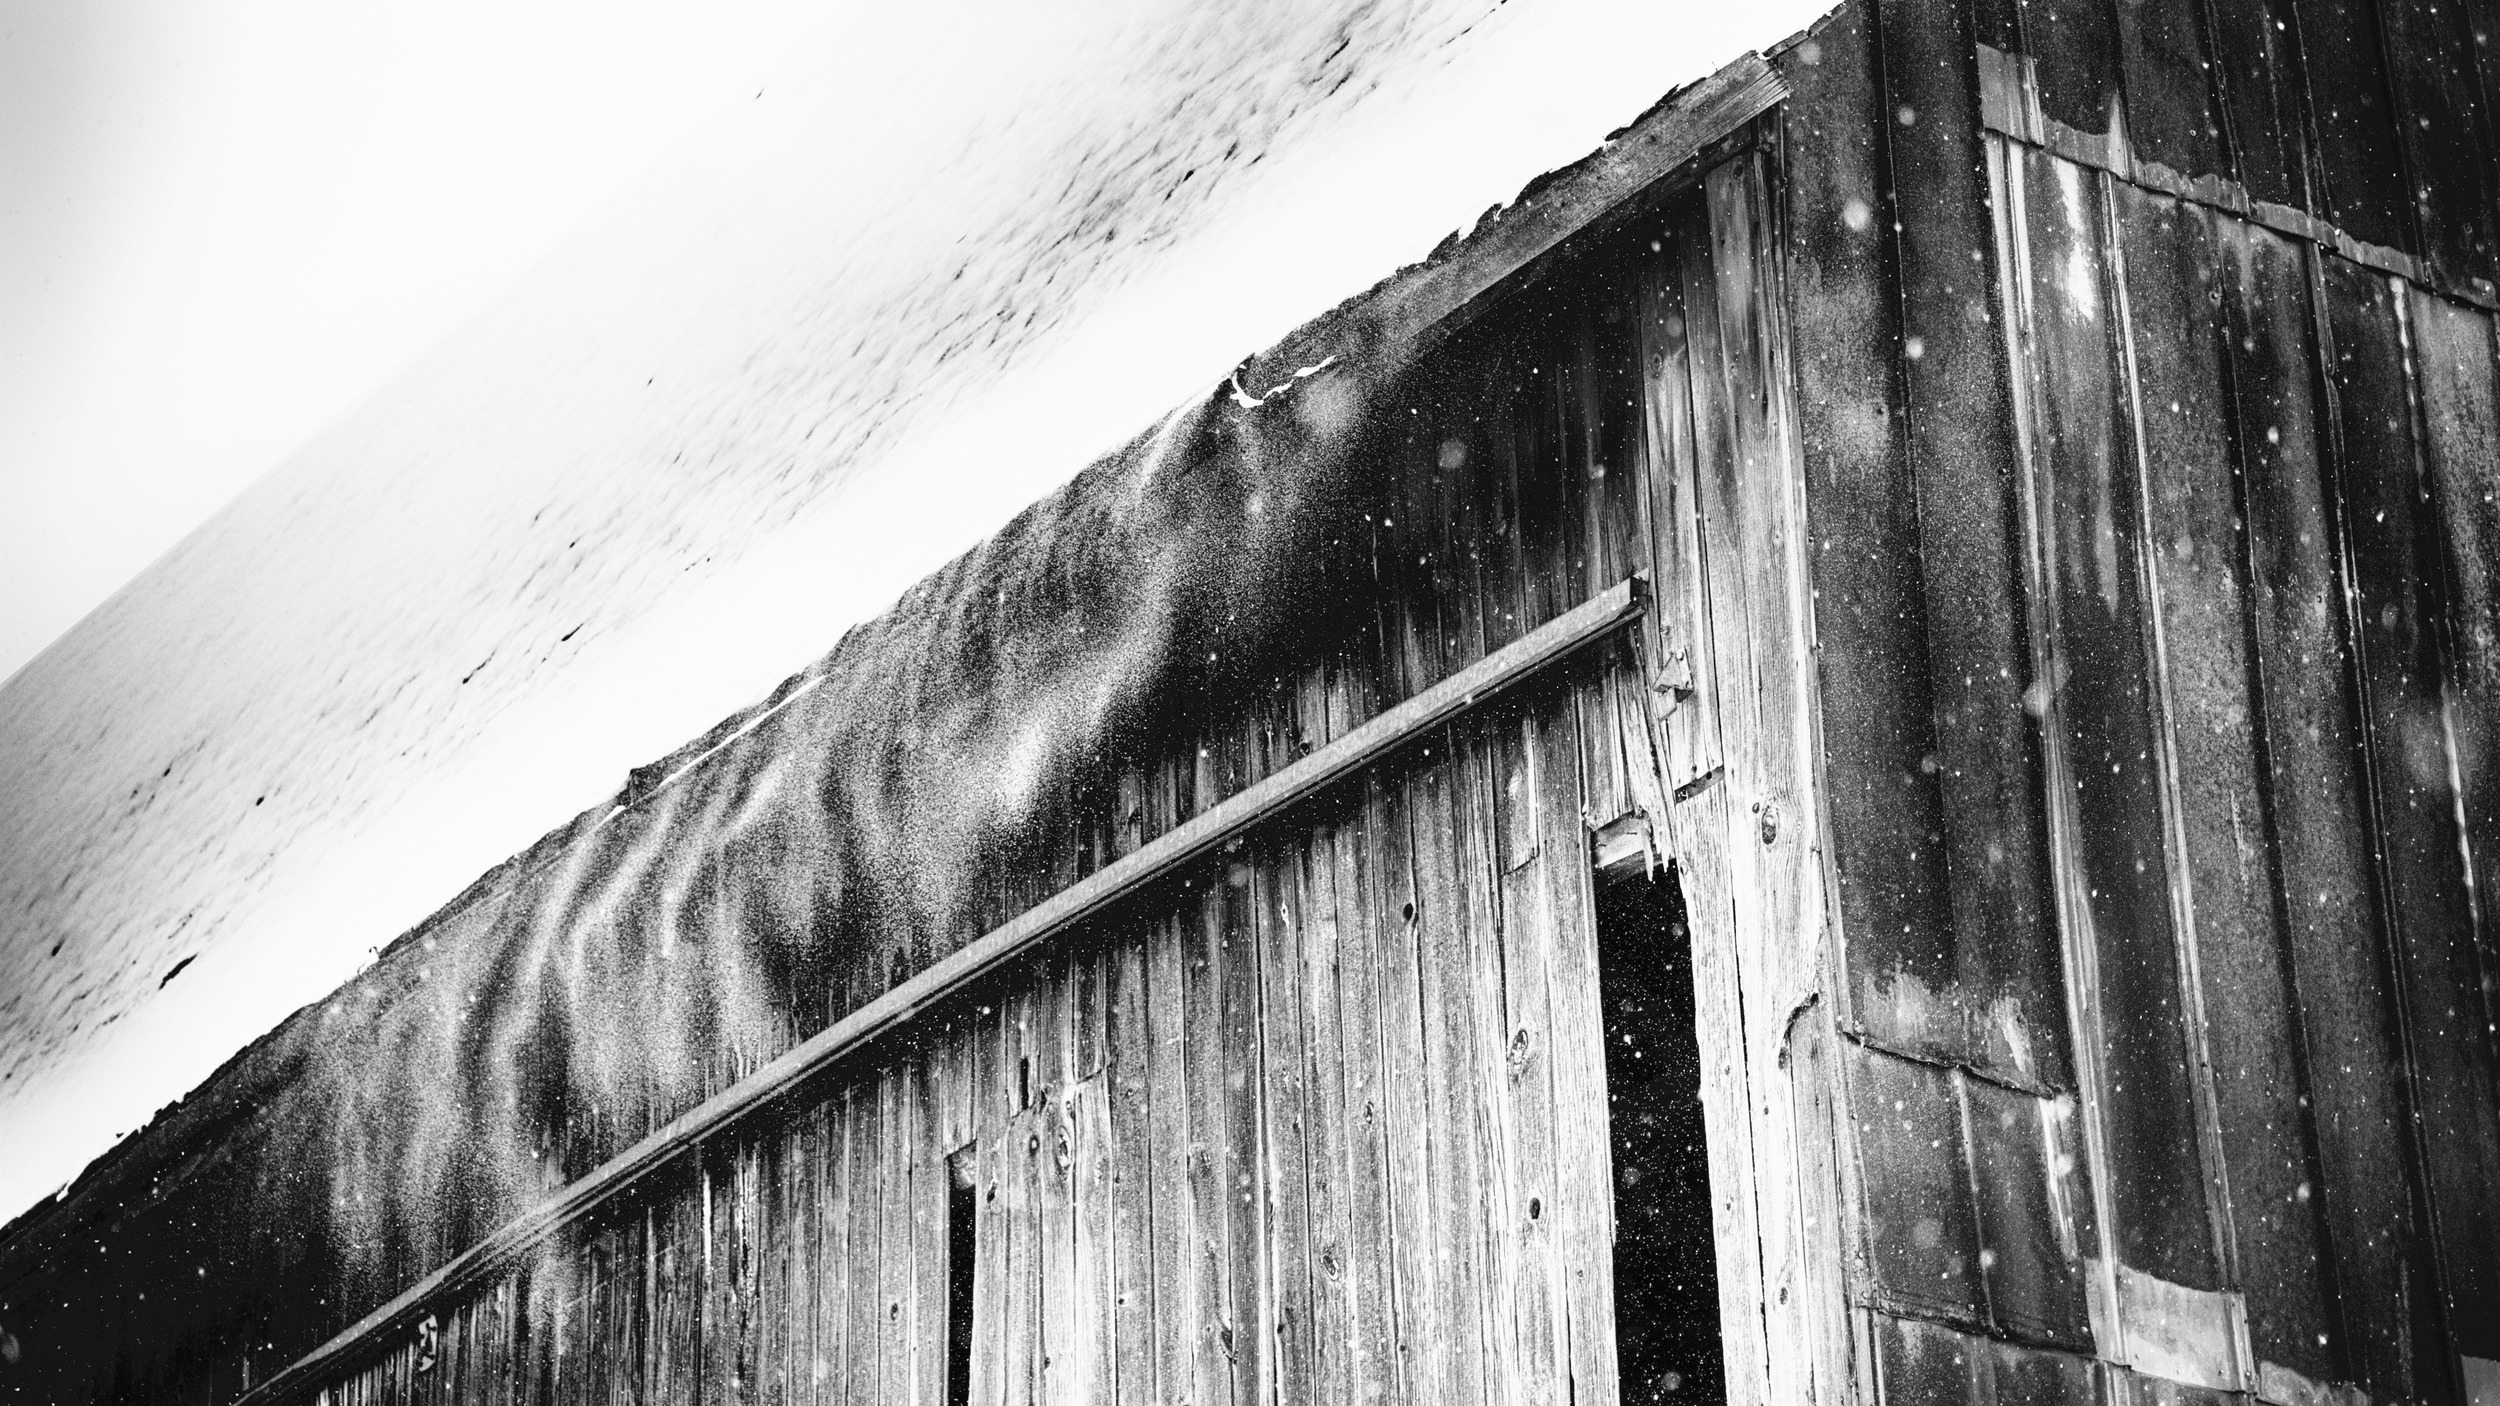 Wading through drifts that were waist deep I trudged on to shoot my favorite barn draped in cold and shedding snow.